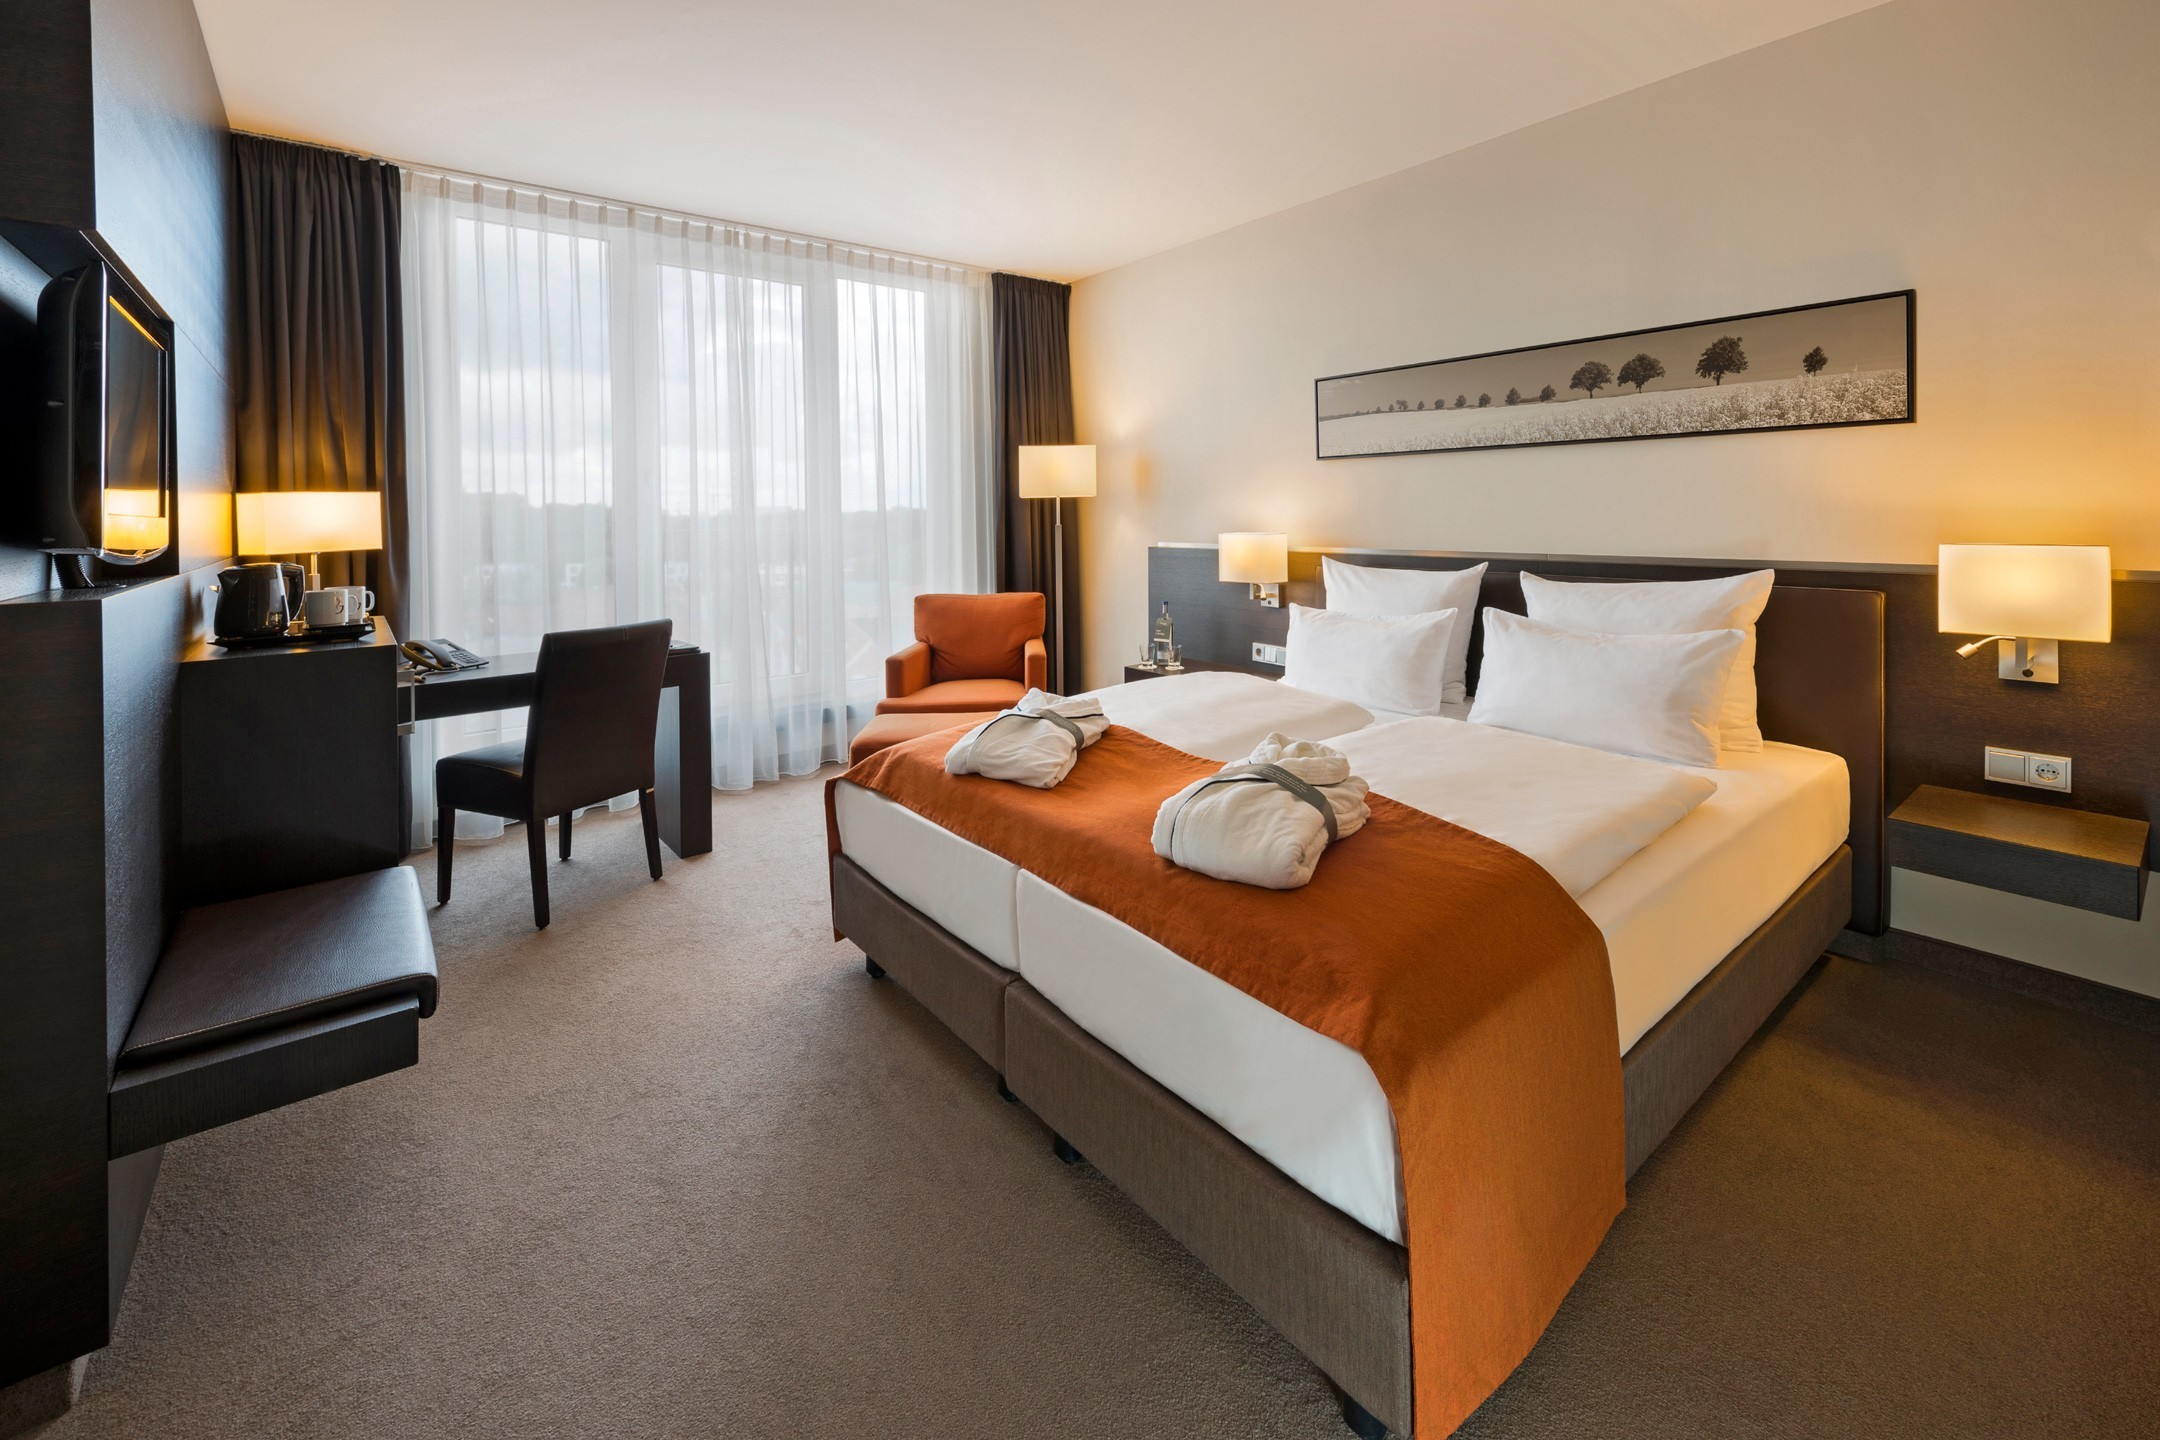 Interior view of a Superior room with double bed and modern bathroom at the ATLANTIC Hoel Lübeck